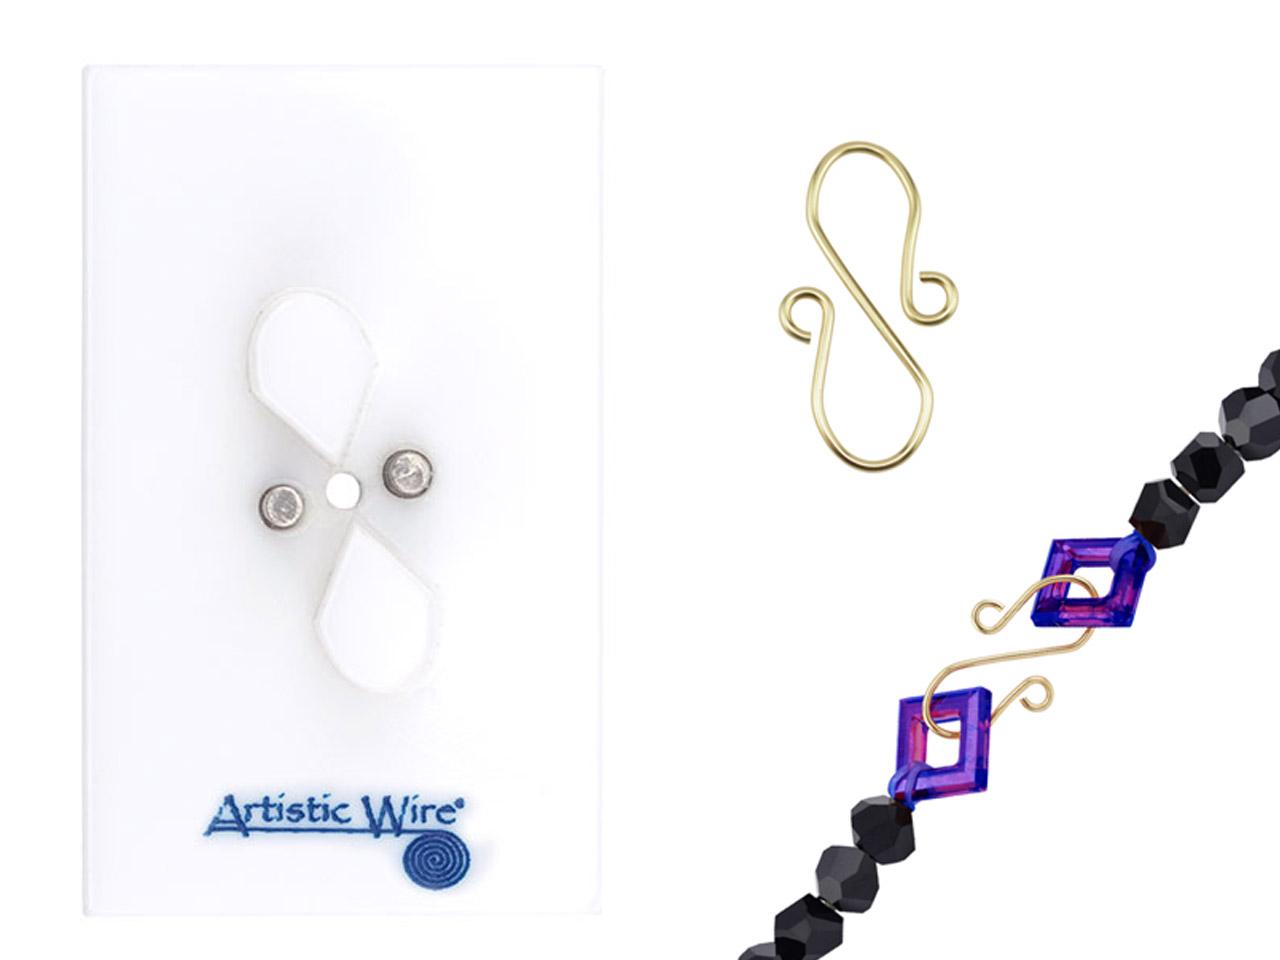 Beadalon Artistic Wire Findings    Forms S Hook Clasp Jig